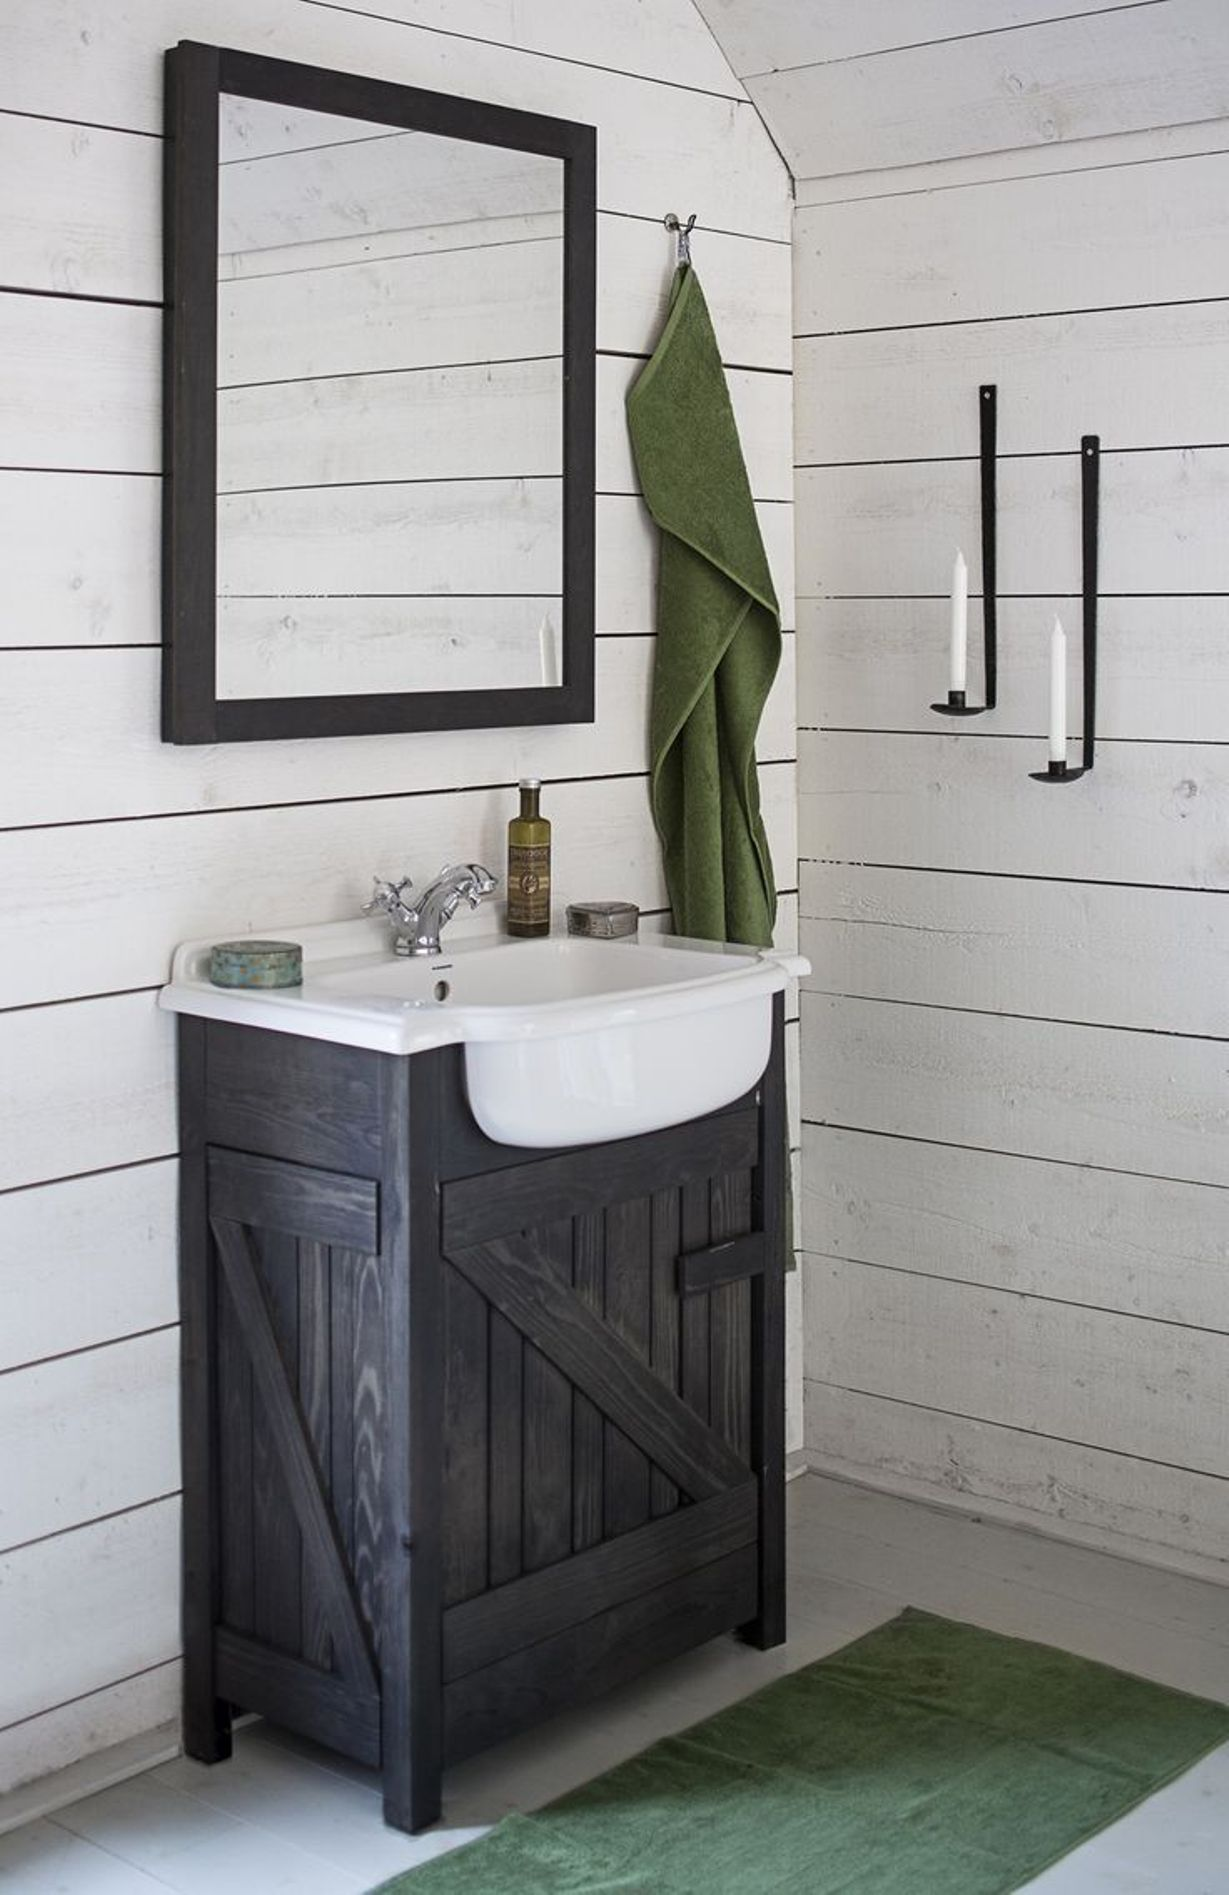 Bathroom Elegant Rustic Vanities Small With Black Color And White